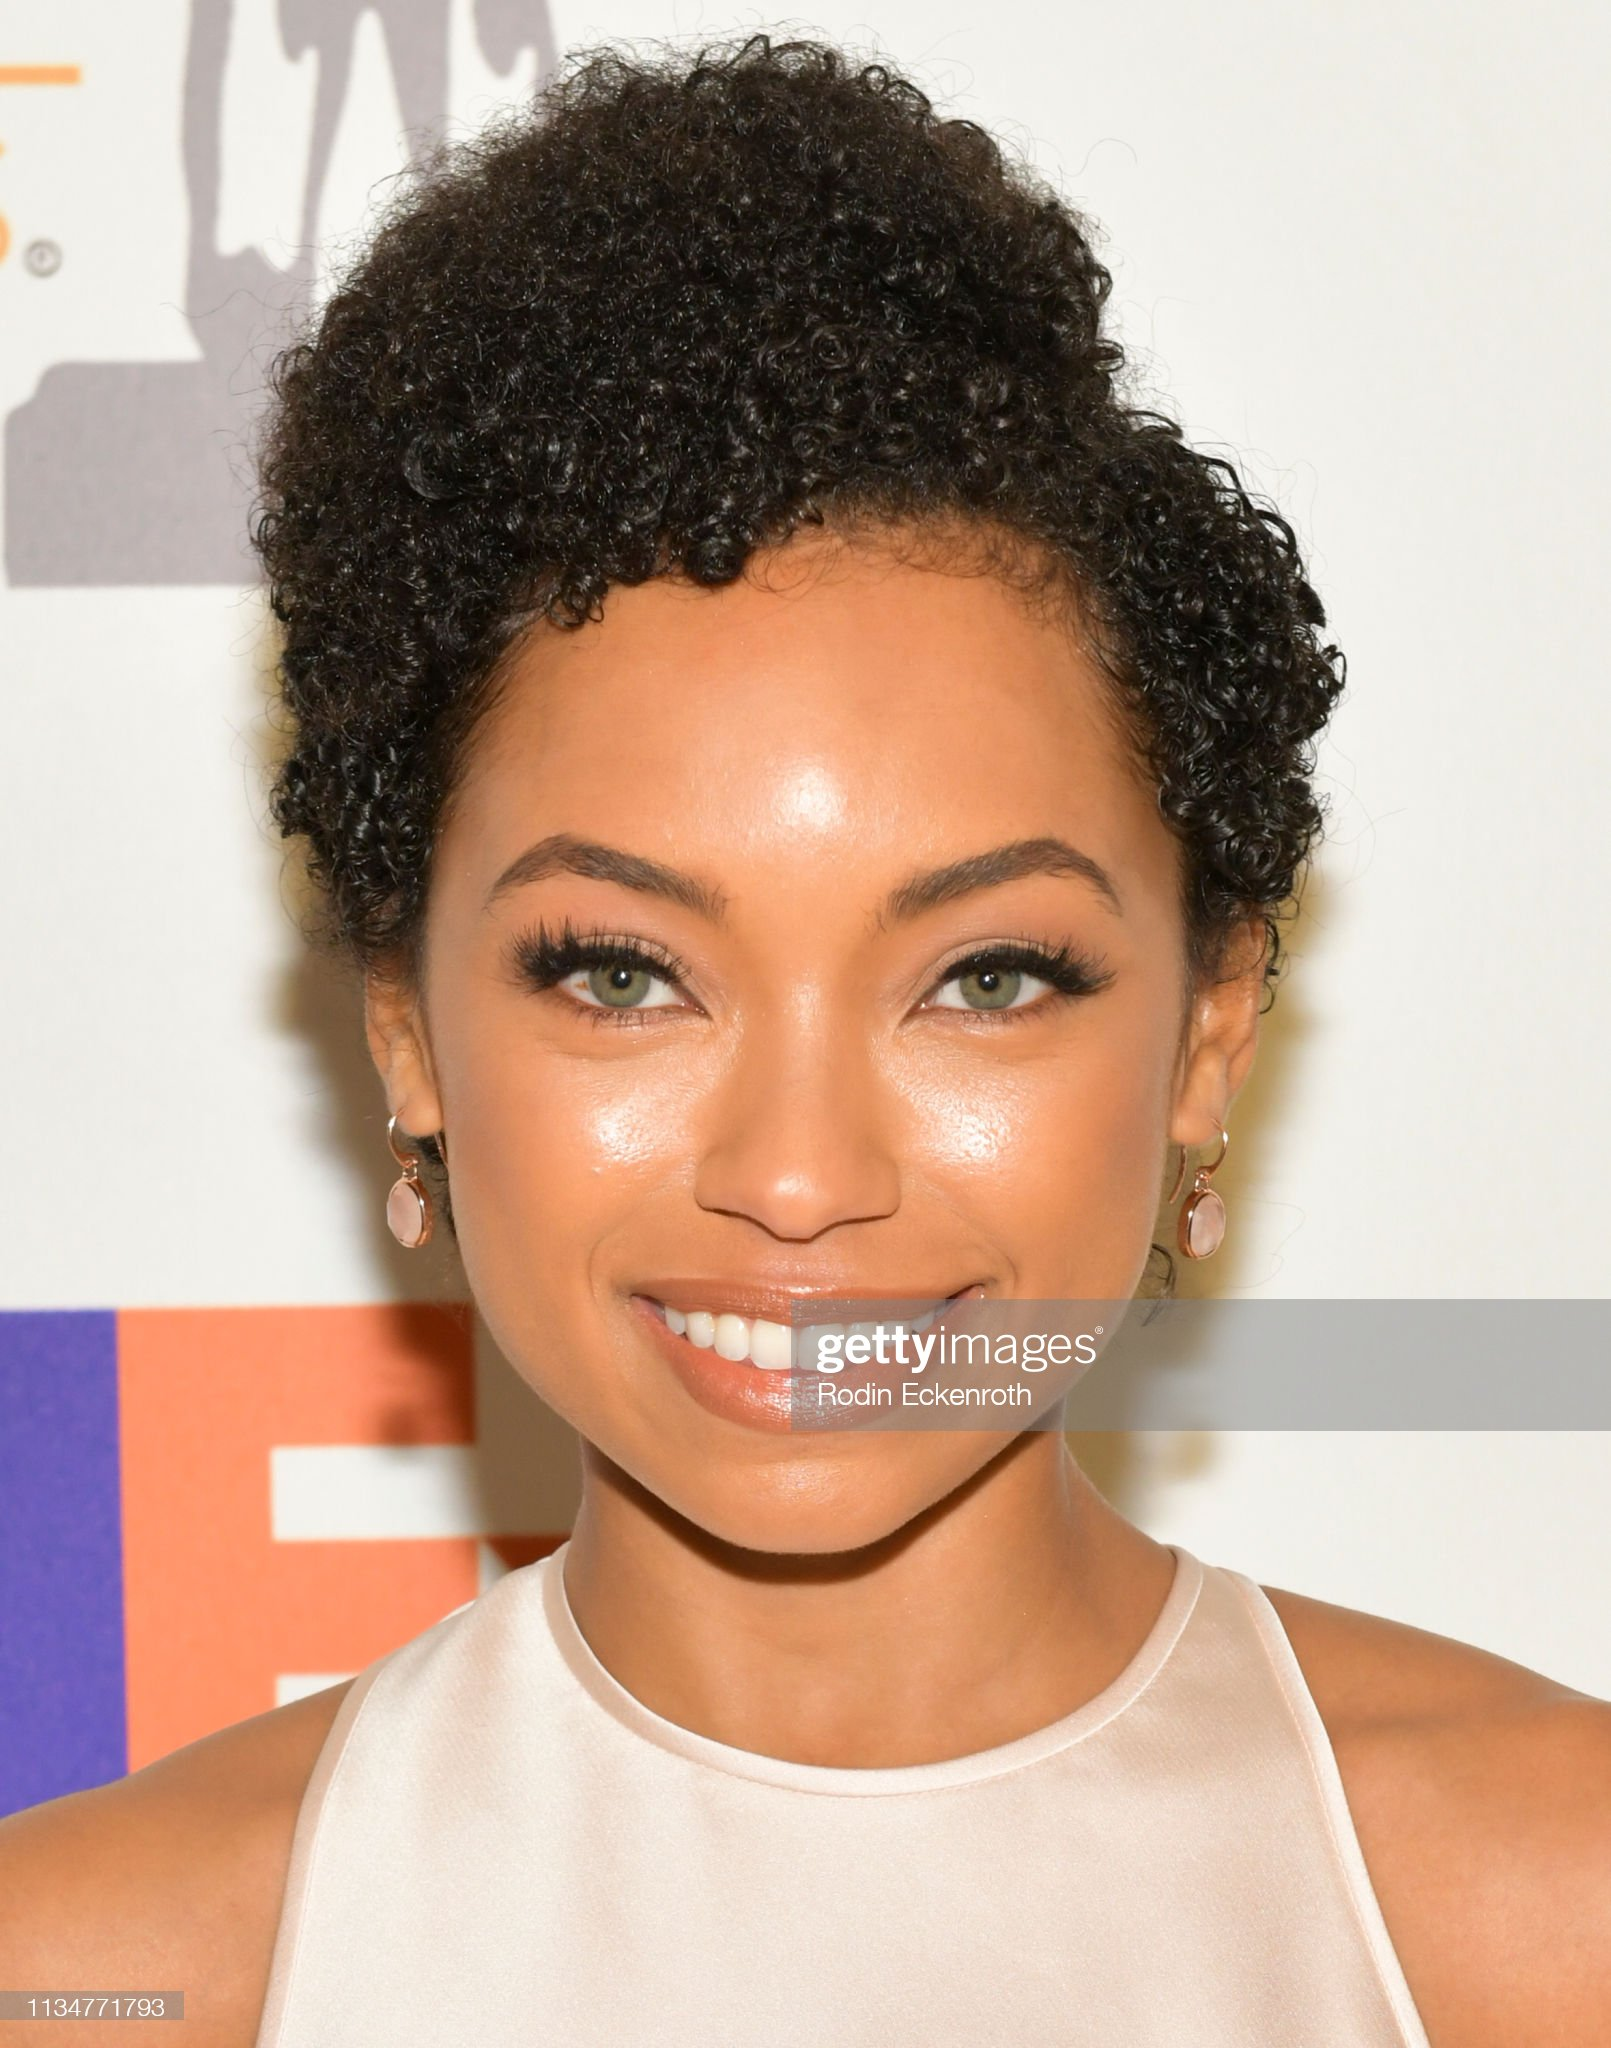 Ojos verdes - Famosas y famosos con los ojos de color VERDE Logan-browning-attends-the-50th-naacp-image-awards-nominees-luncheon-picture-id1134771793?s=2048x2048